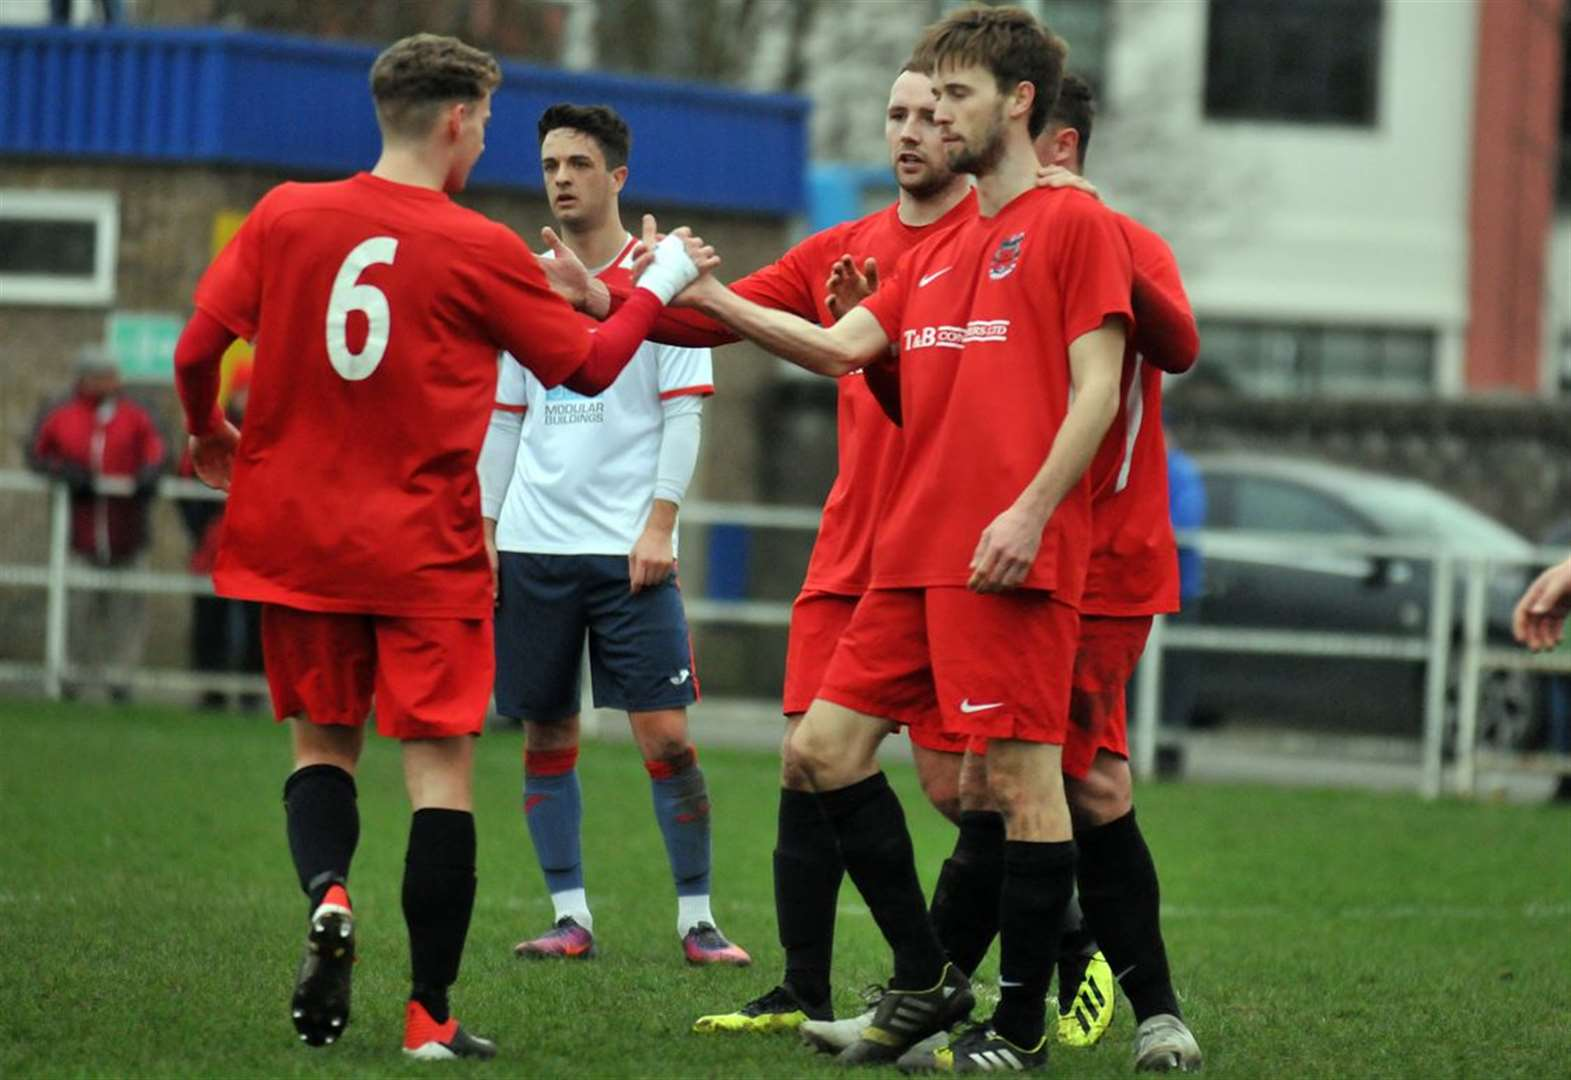 FOOTBALL: Seven up for Knights